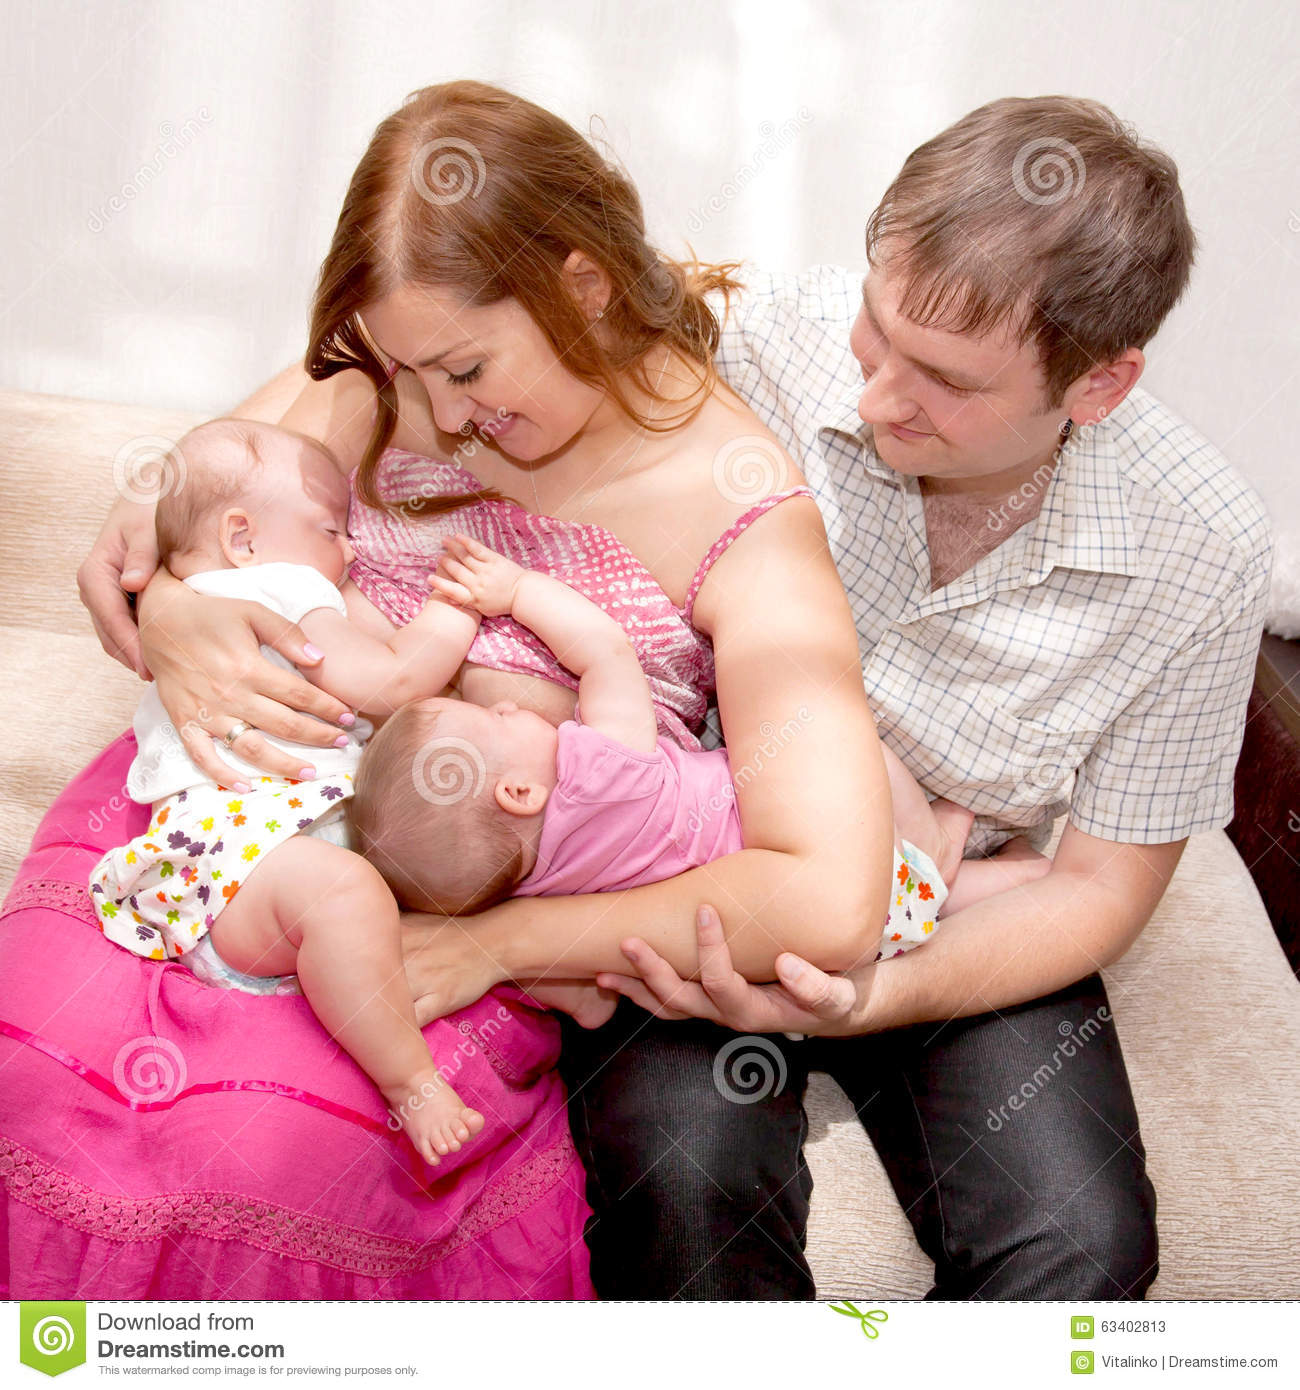 breast-feeding twin babies at home. stock image - image of concept